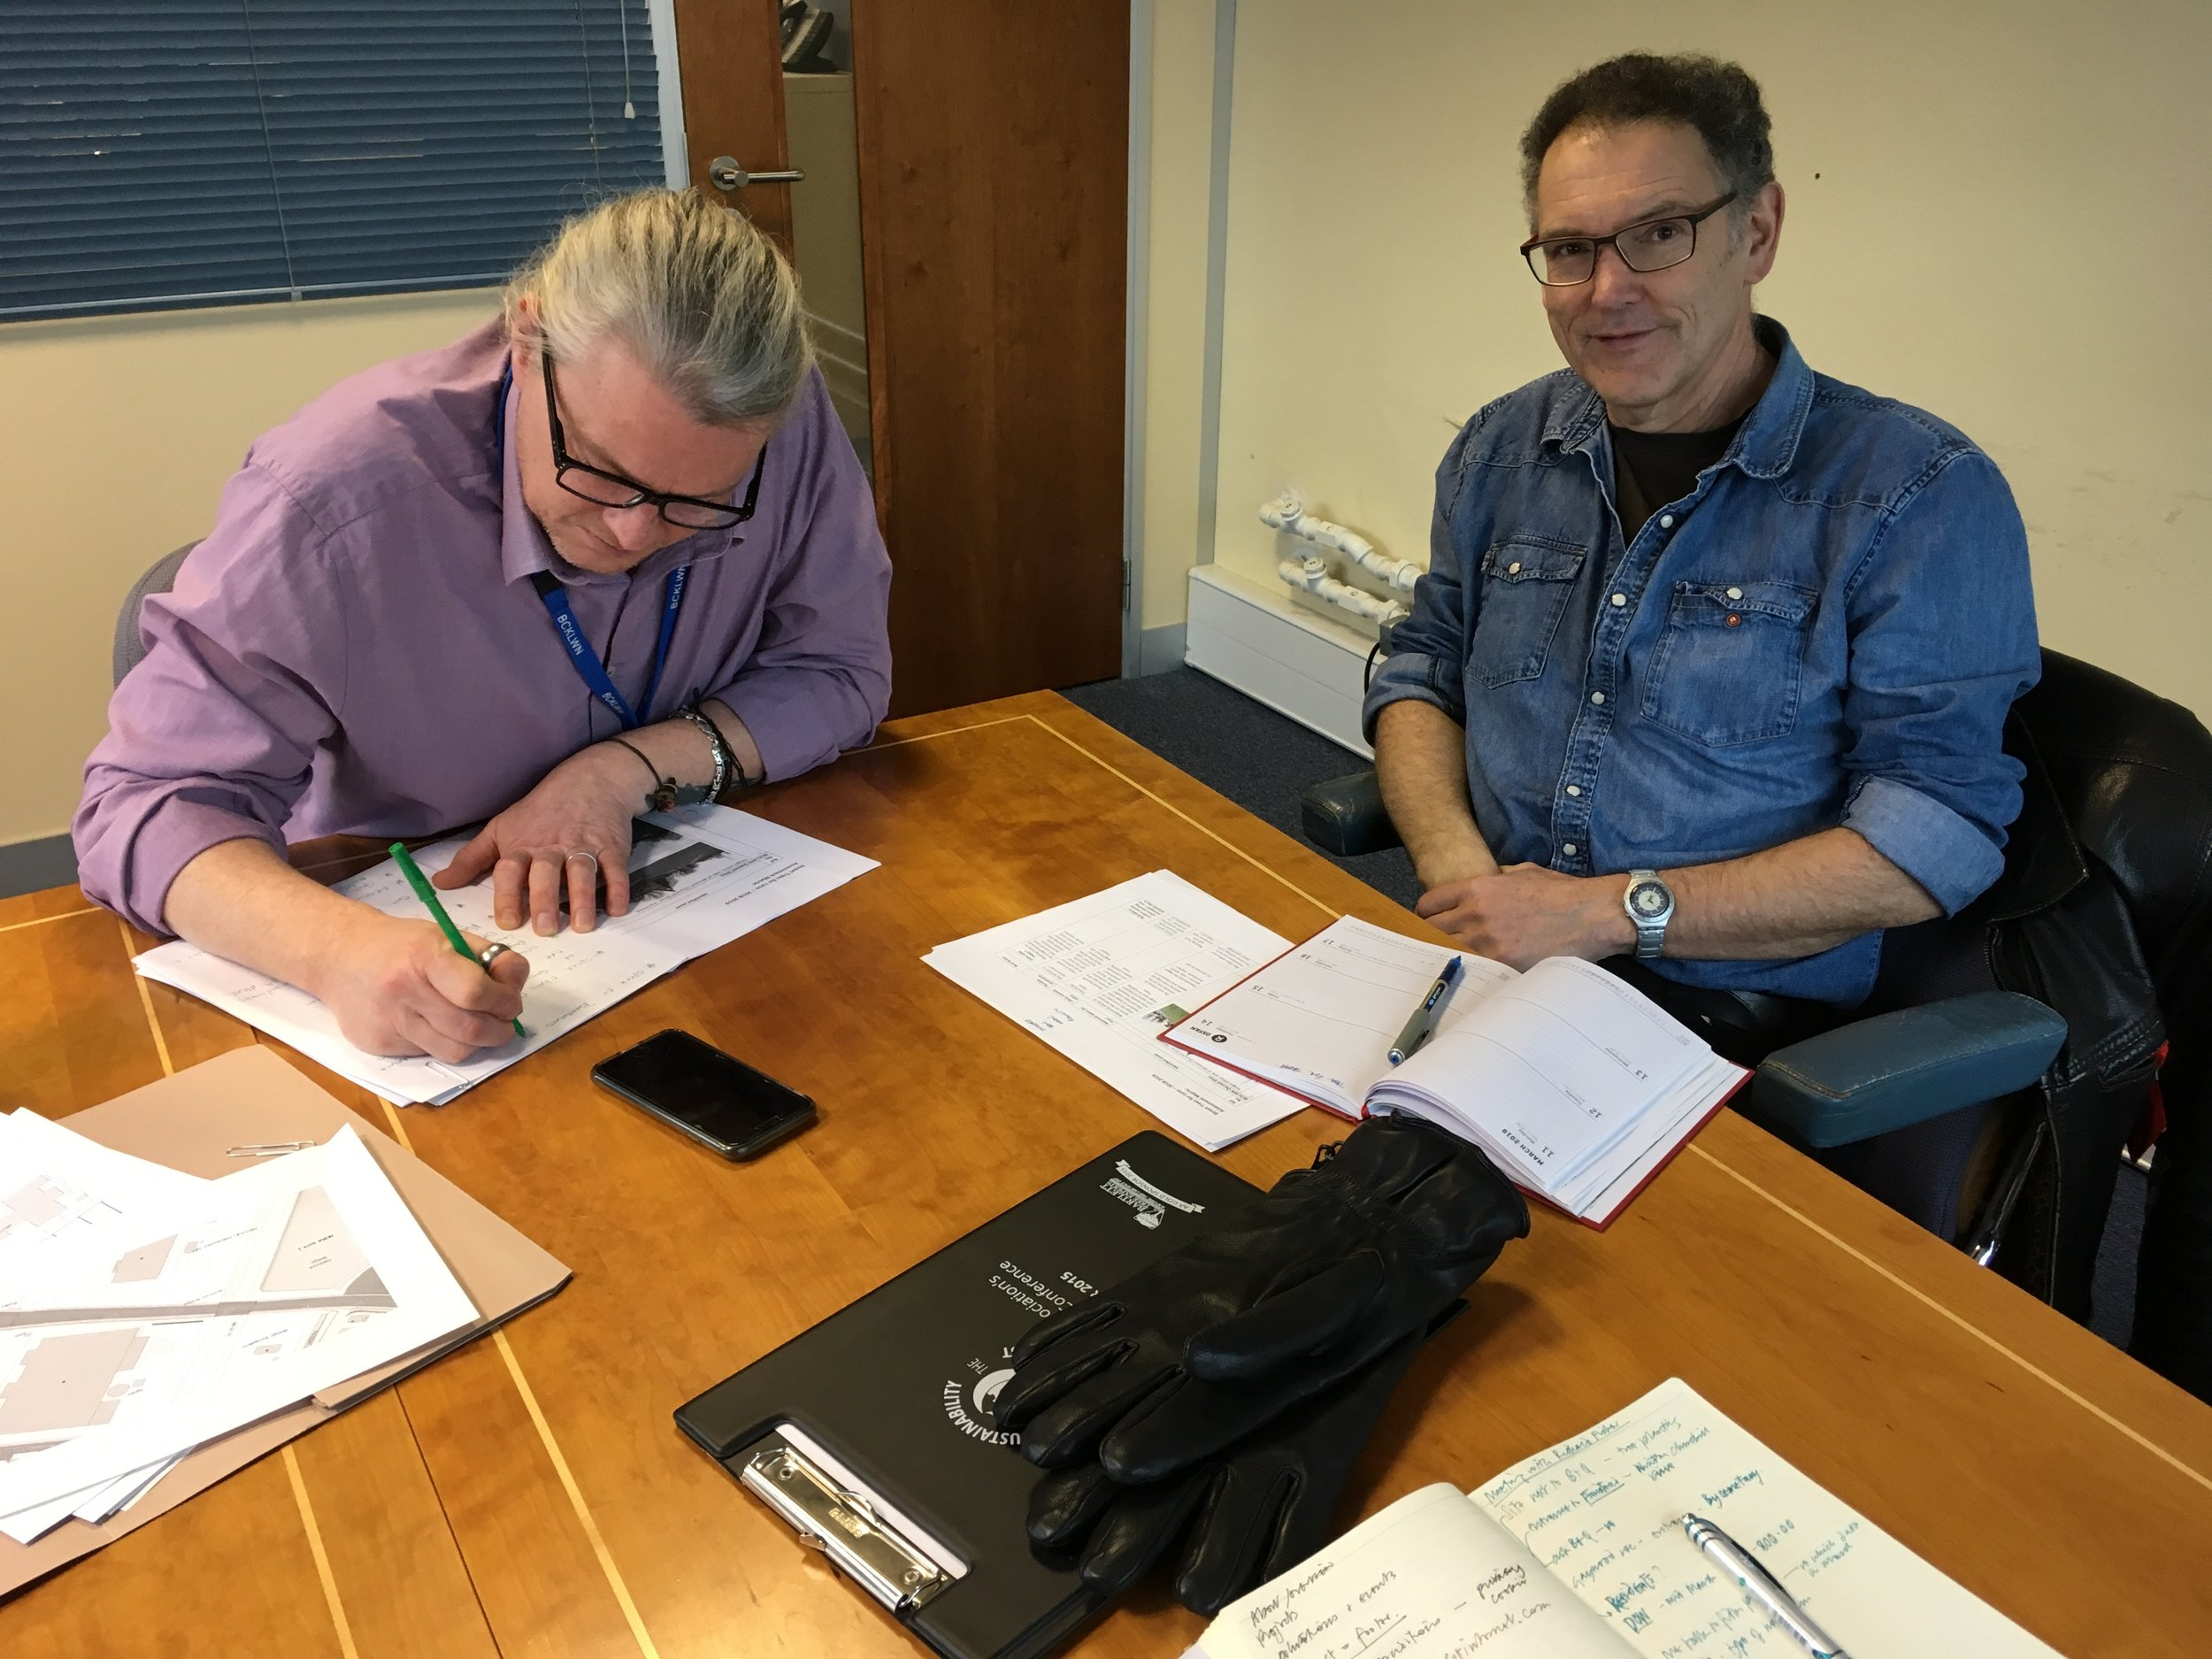 Richard Fisher, Tree Officer for Borough Council of Kings Lynn and West Norfolk and Rick Morrish representing the King's Lynn Civic Society at our latest planning meeting for the next tree plantings for 2019.  https://democracy.west-norfolk.gov.uk/documents/s15559/BCKLWN%20Draft%20Tree%20and%20Woodland%20Strategy%20062017.pdf